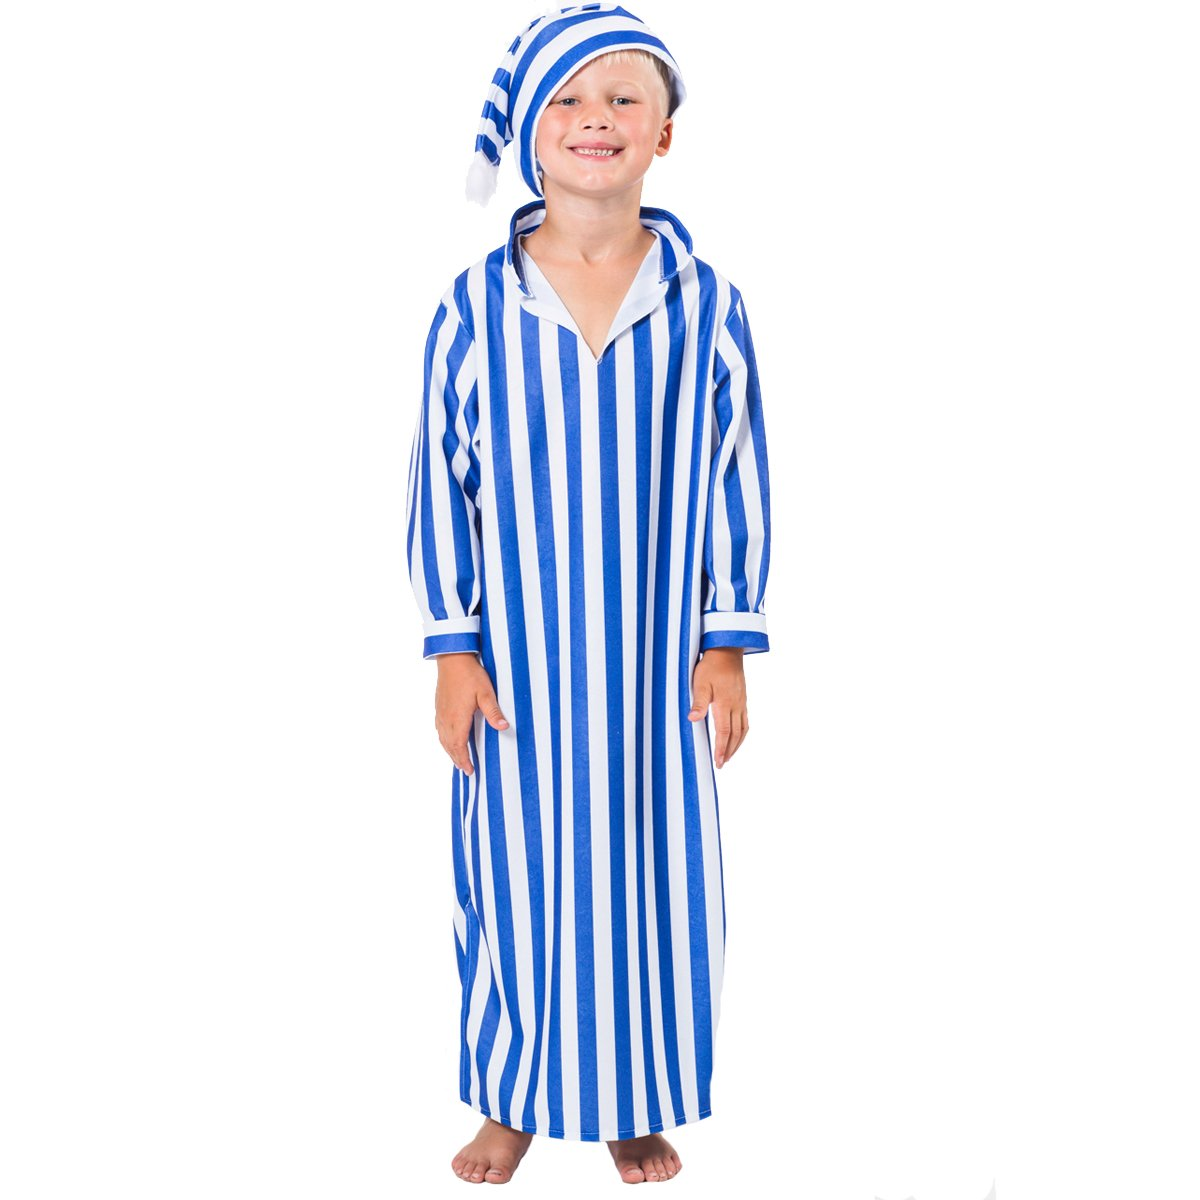 Amazon.com: Night Gown and Cap Costume for Kids: Toys & Games